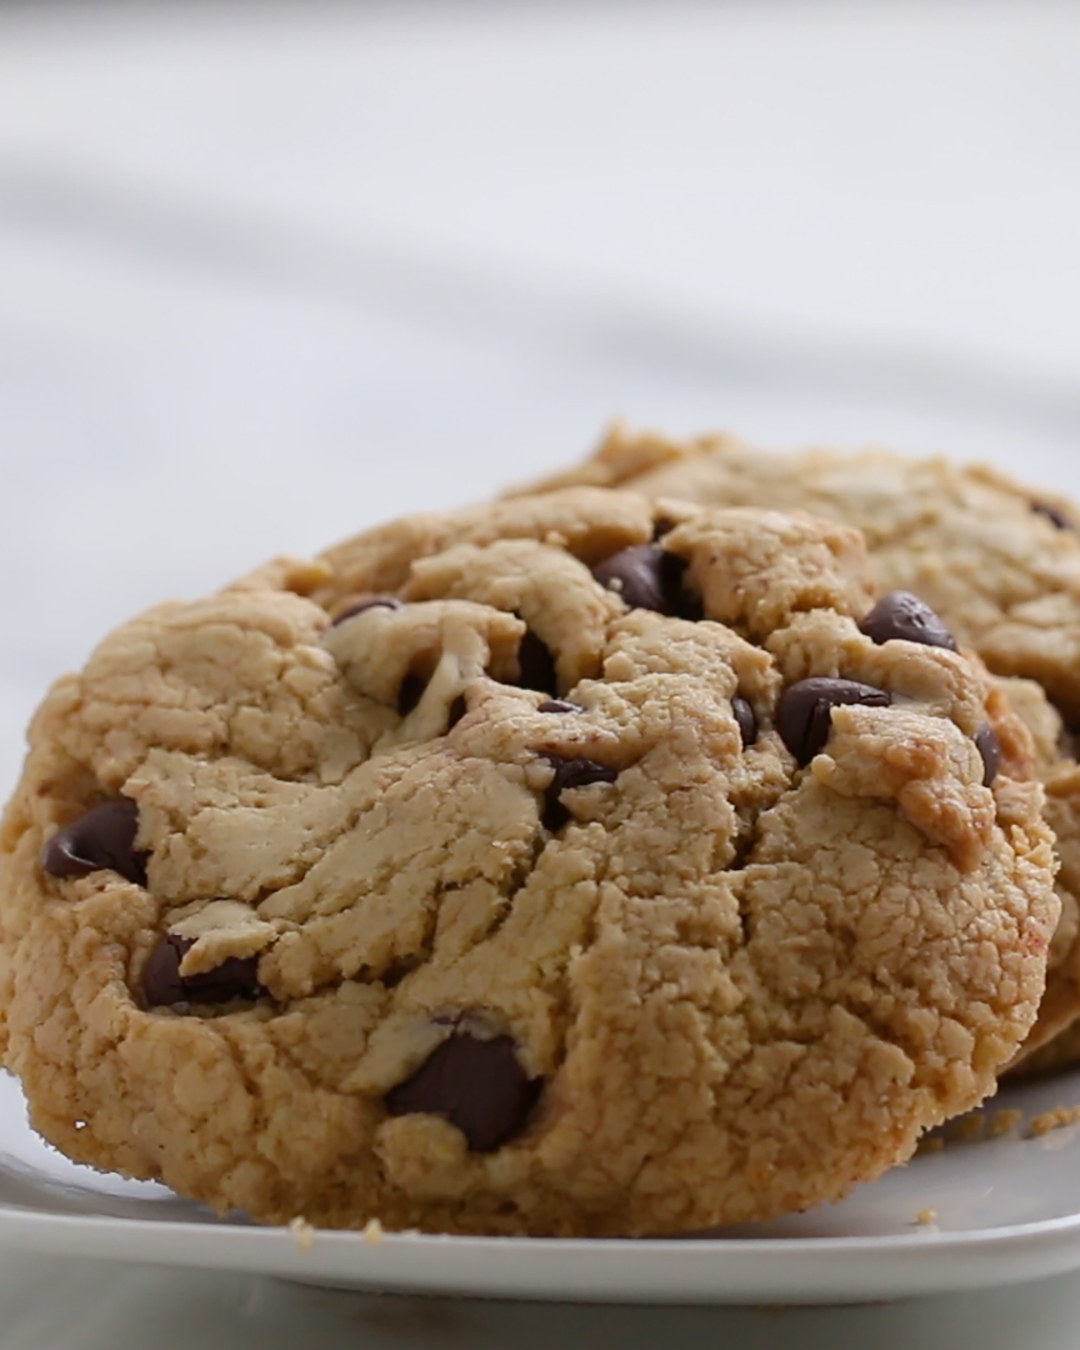 Making chocolate chip cookies from cake mix